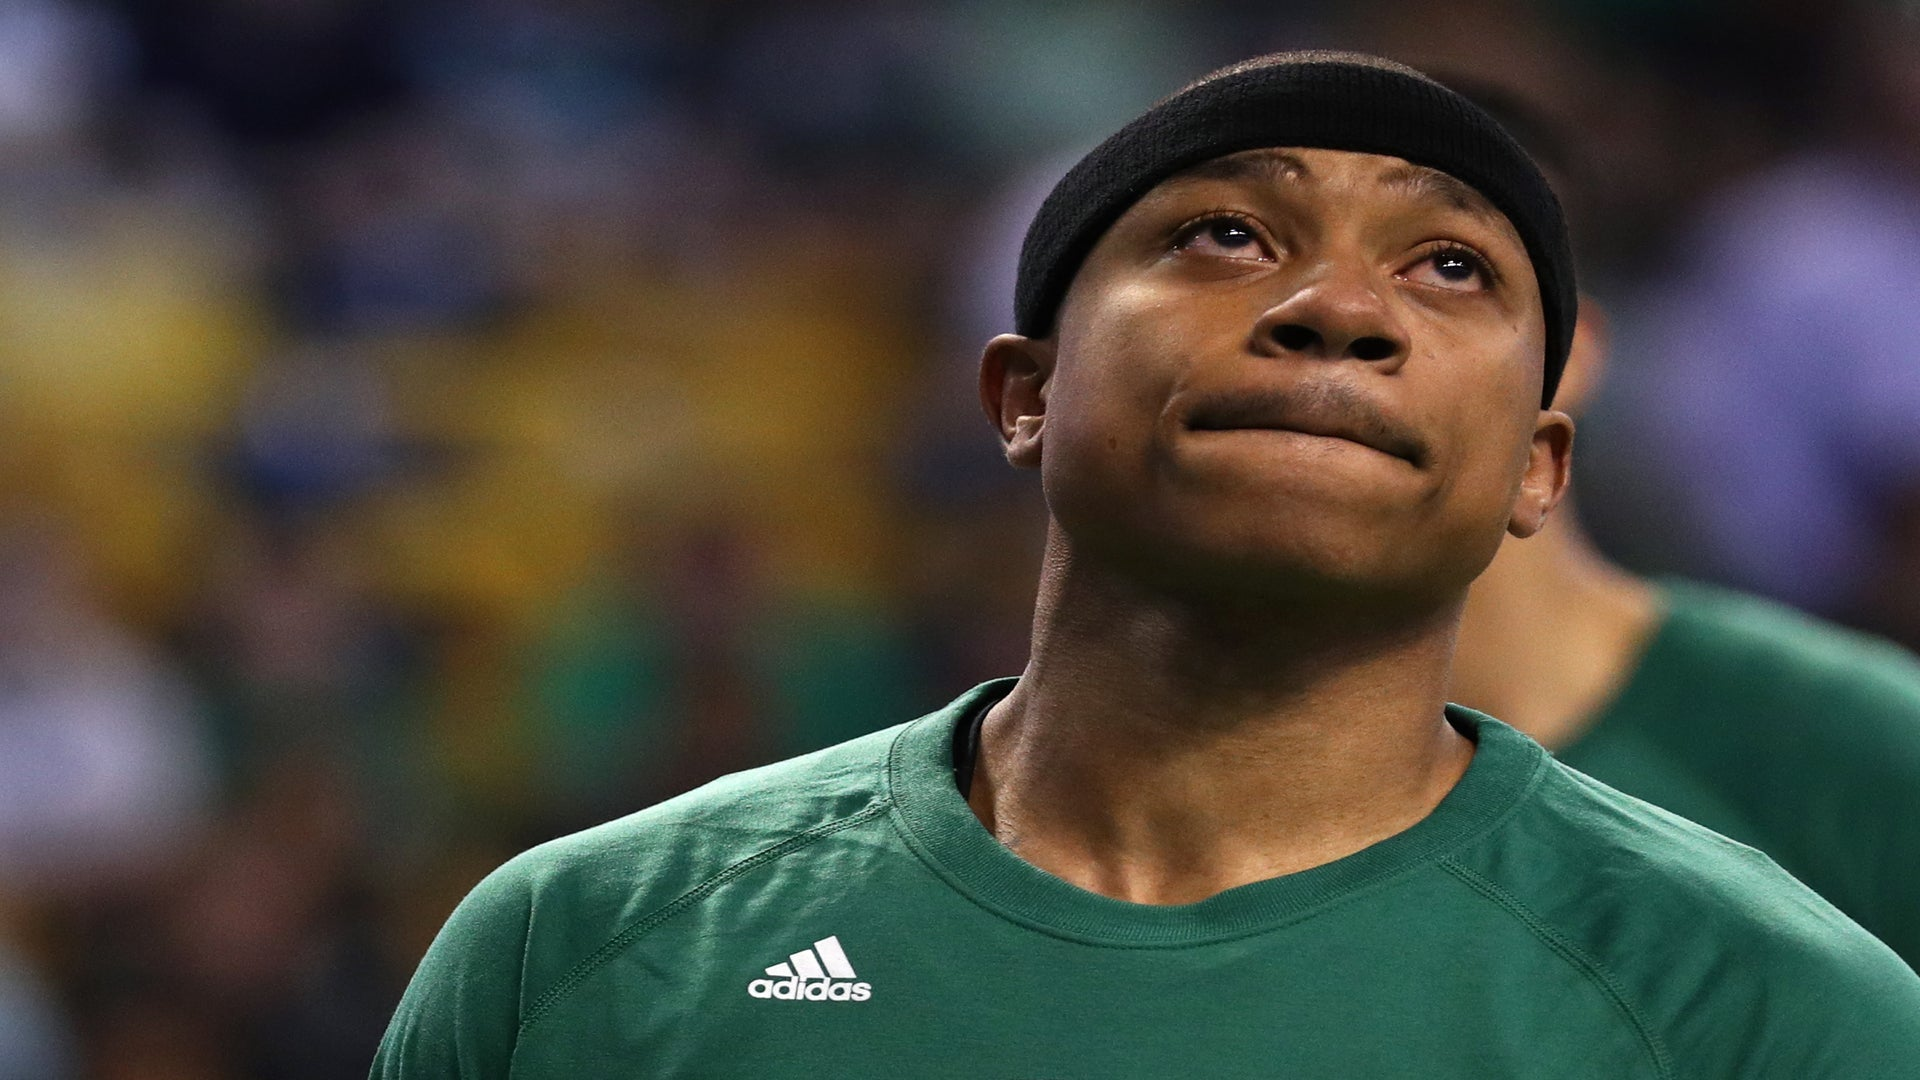 Isaiah Thomas Played In Game 1 After Losing Sister in Car Accident